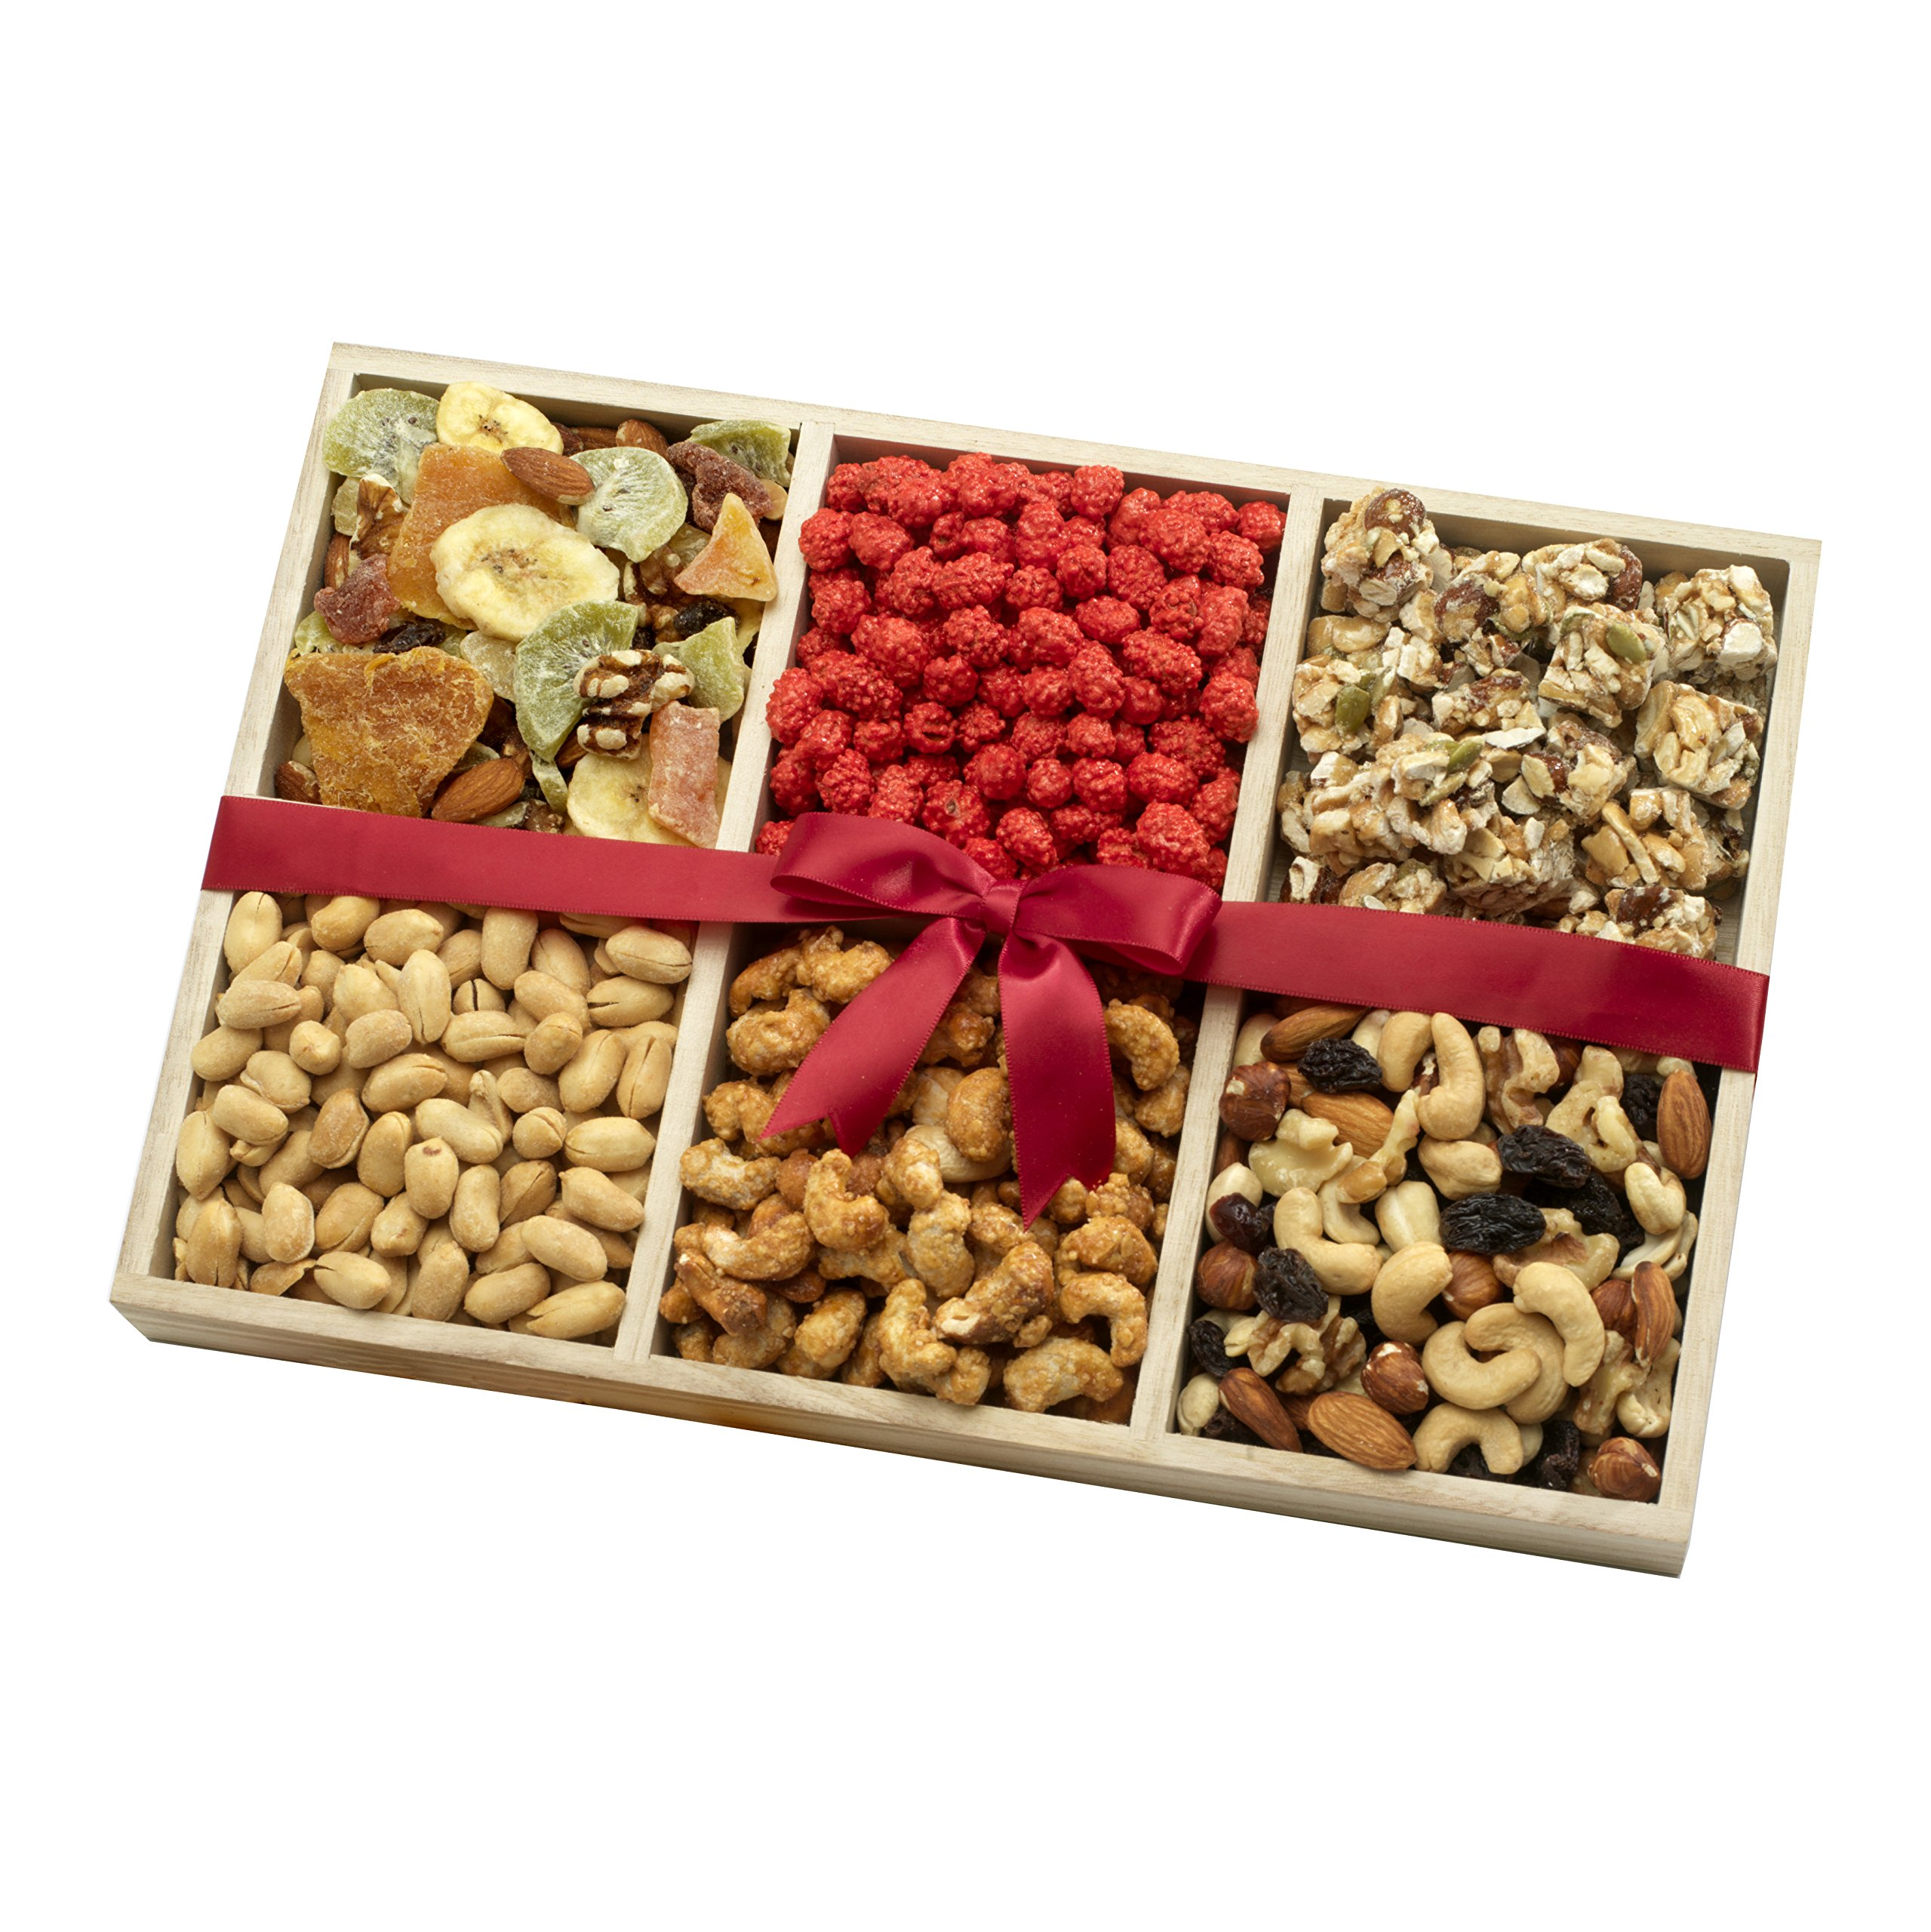 Dried Fruit and Nut Party Gift Tray, 2.5lb, A Healthy Gift Basket by Broadway Basketeers